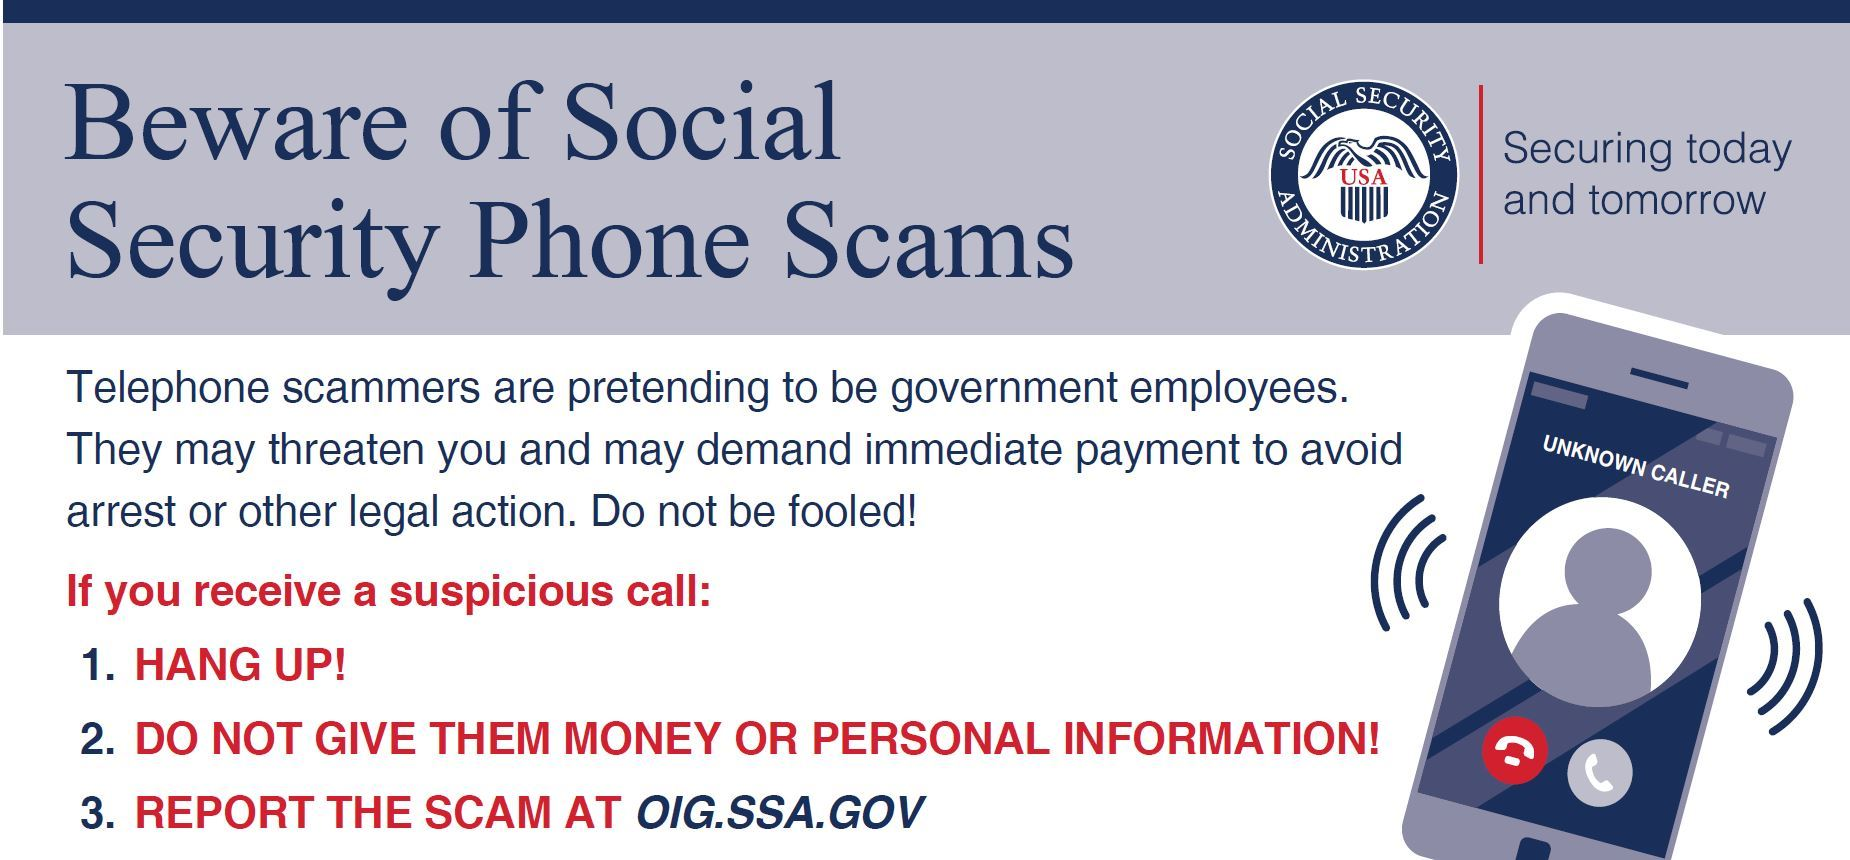 SSA Scams image